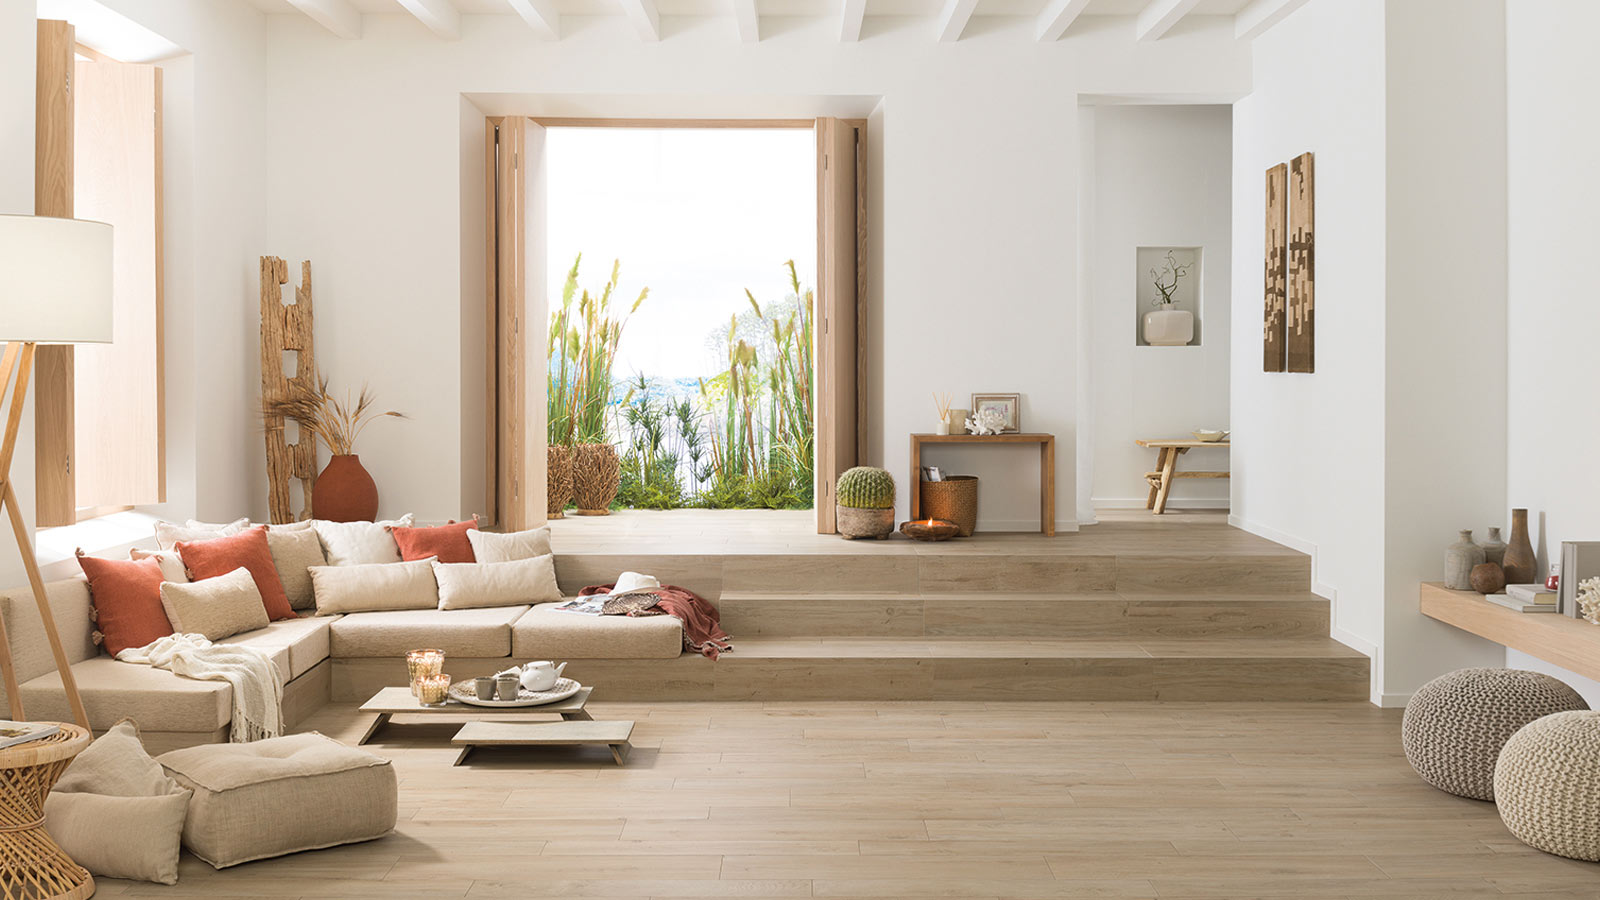 Mediterranean style houses with the Porcelanosa collections